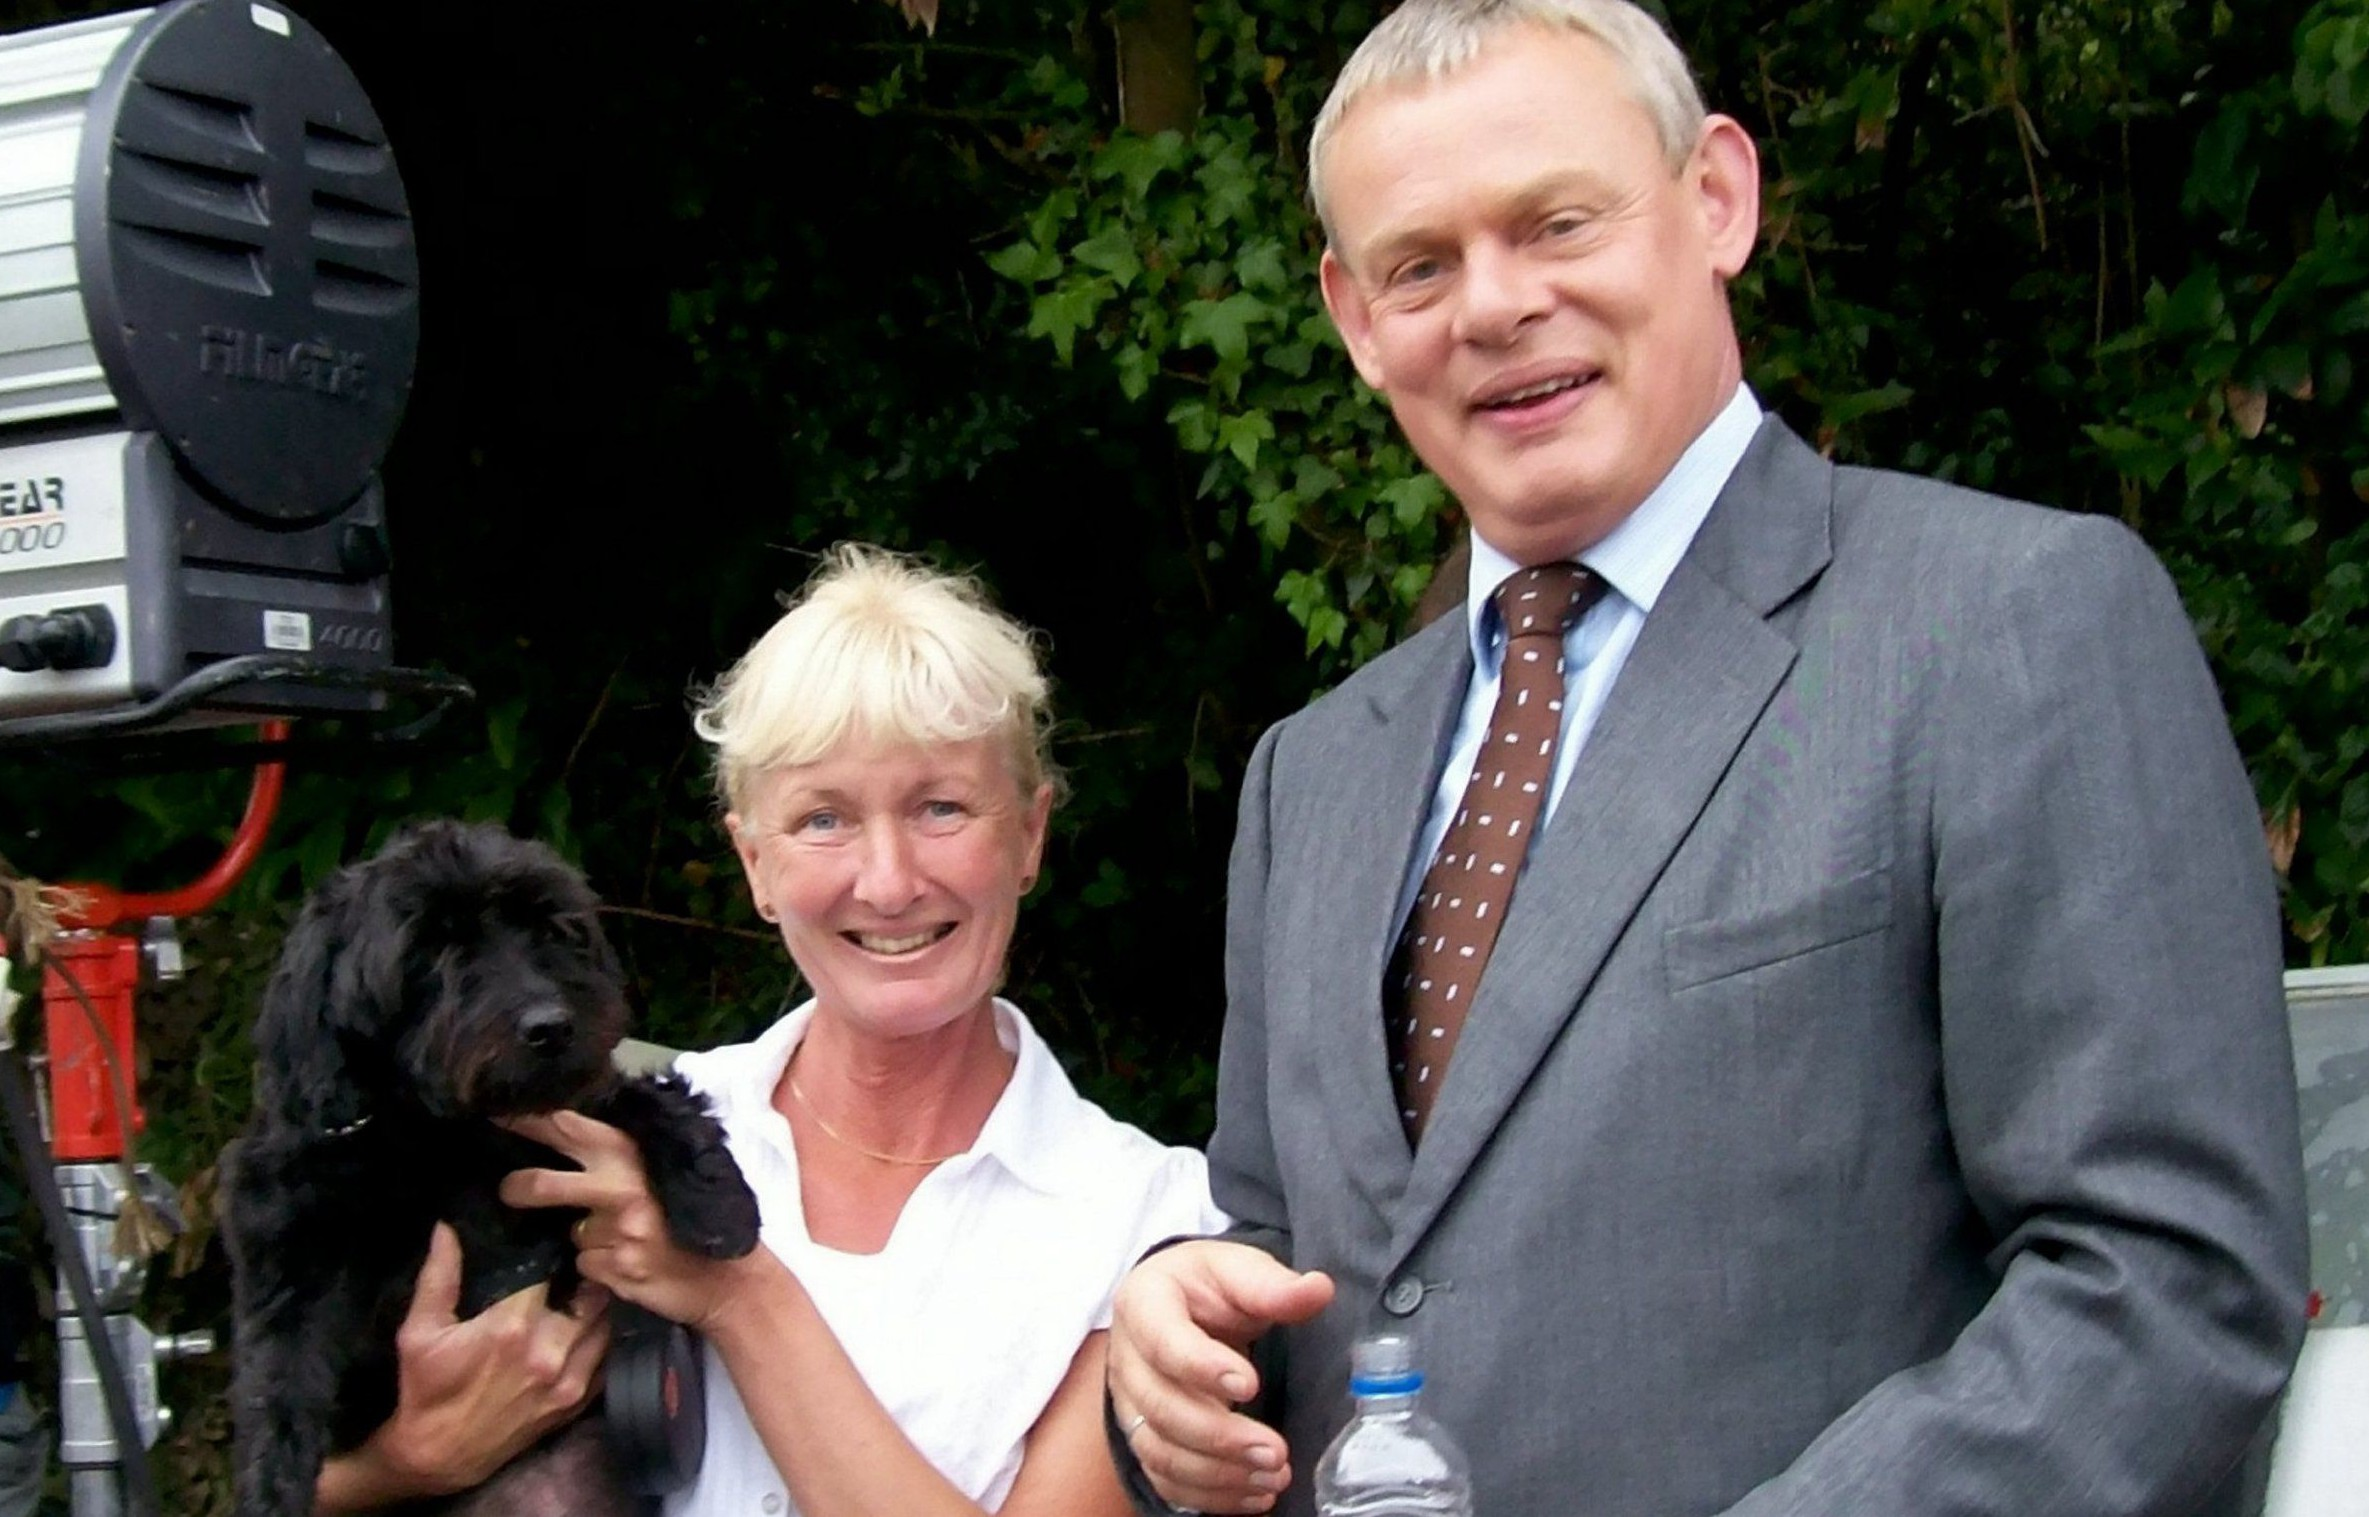 """Jane Wilson, Pippin and Martin Clunes on set. Actor Martin Clunes has offered a £2000 reward to try to find a stolen dog from Leicestershire. See NTI story NTIDOG. The 54-year-old star of TV show Doc Martin has made the generous gesture after Pippin was stolen in smash-and-grab raid at a house in Wigston, Leicester last Tuesday morning, March 15, 2016. Gareth Wilson, the owner of Pippin - a 15-year-old black yoodle, contacted the actor's agent in a desperate bid to find his beloved pet. Gareth said Pippin, a cross between a Yorkshire terrier and a poodle, is seriously ill and needs daily medicine to keep him alive. He said: """"My mother Jane took Pippin on holiday to Cornwall a few years ago. She is big fan of Martin Clunes so she went to the set in Port Isaac where they were filming the show. She got to meet Martin and he got to meet Pippin. She said he was lovely and was genuinely interested in Pippin.î"""